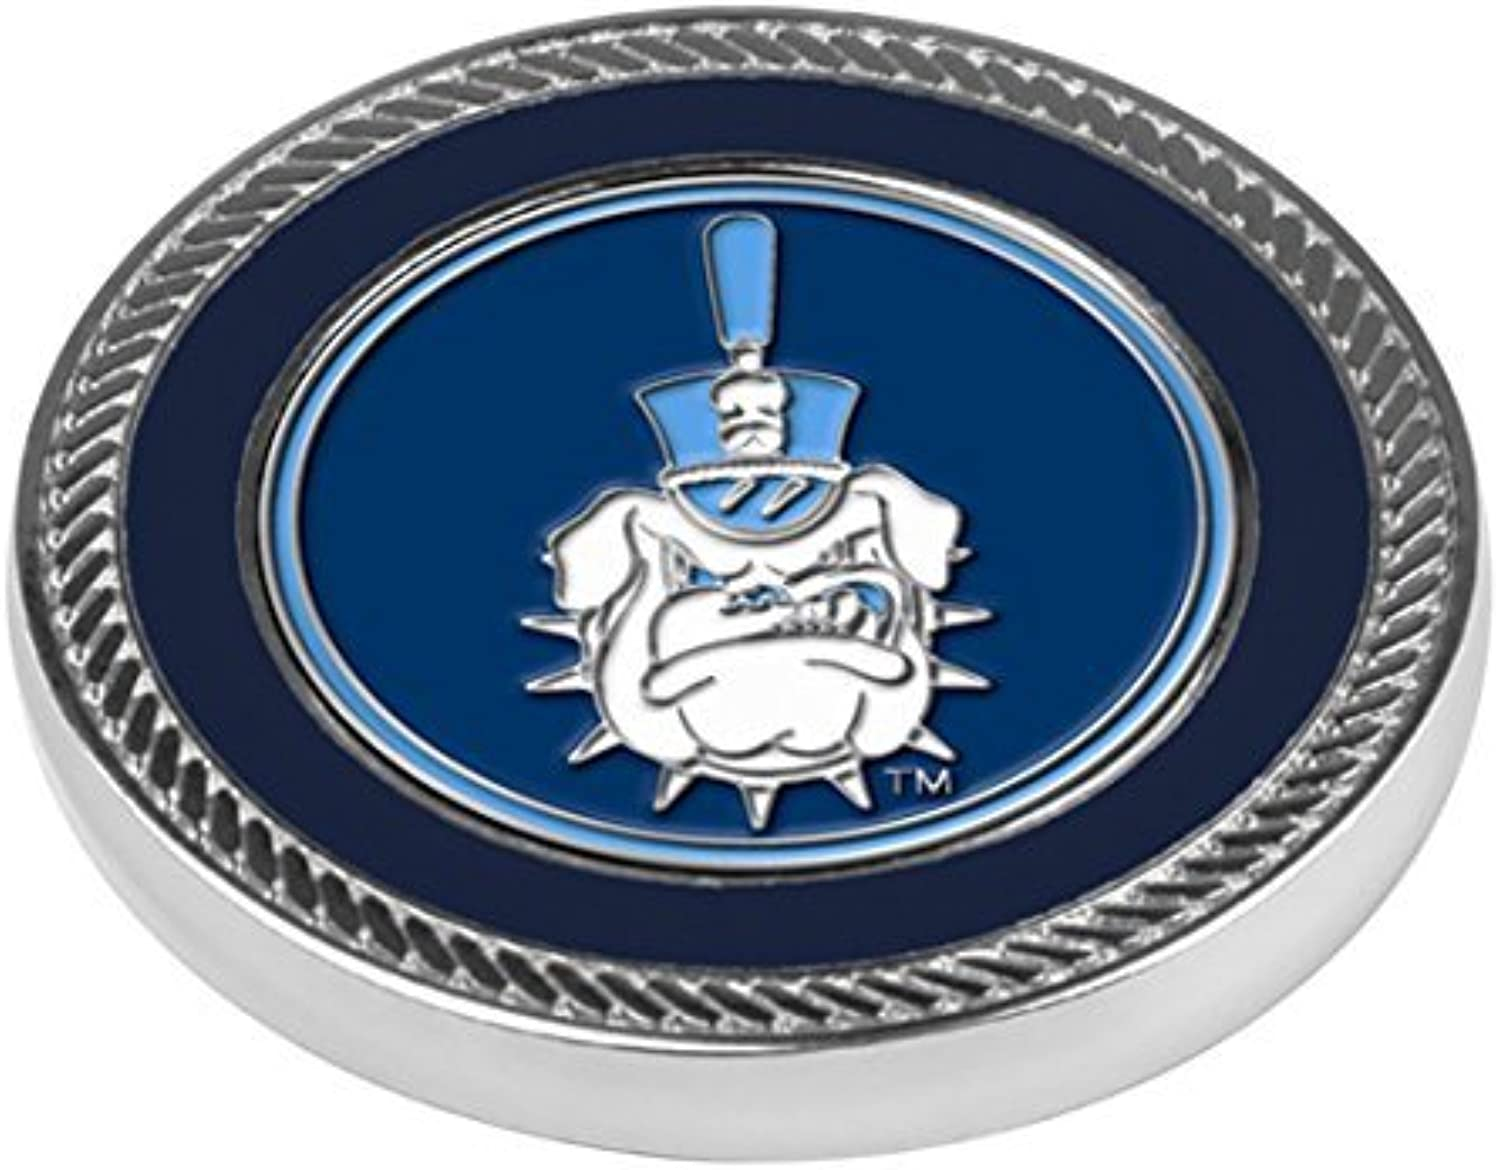 NCAA Citadel Bulldogs Challenge Coin 2 Ball Markers, One Size by LinksWalker